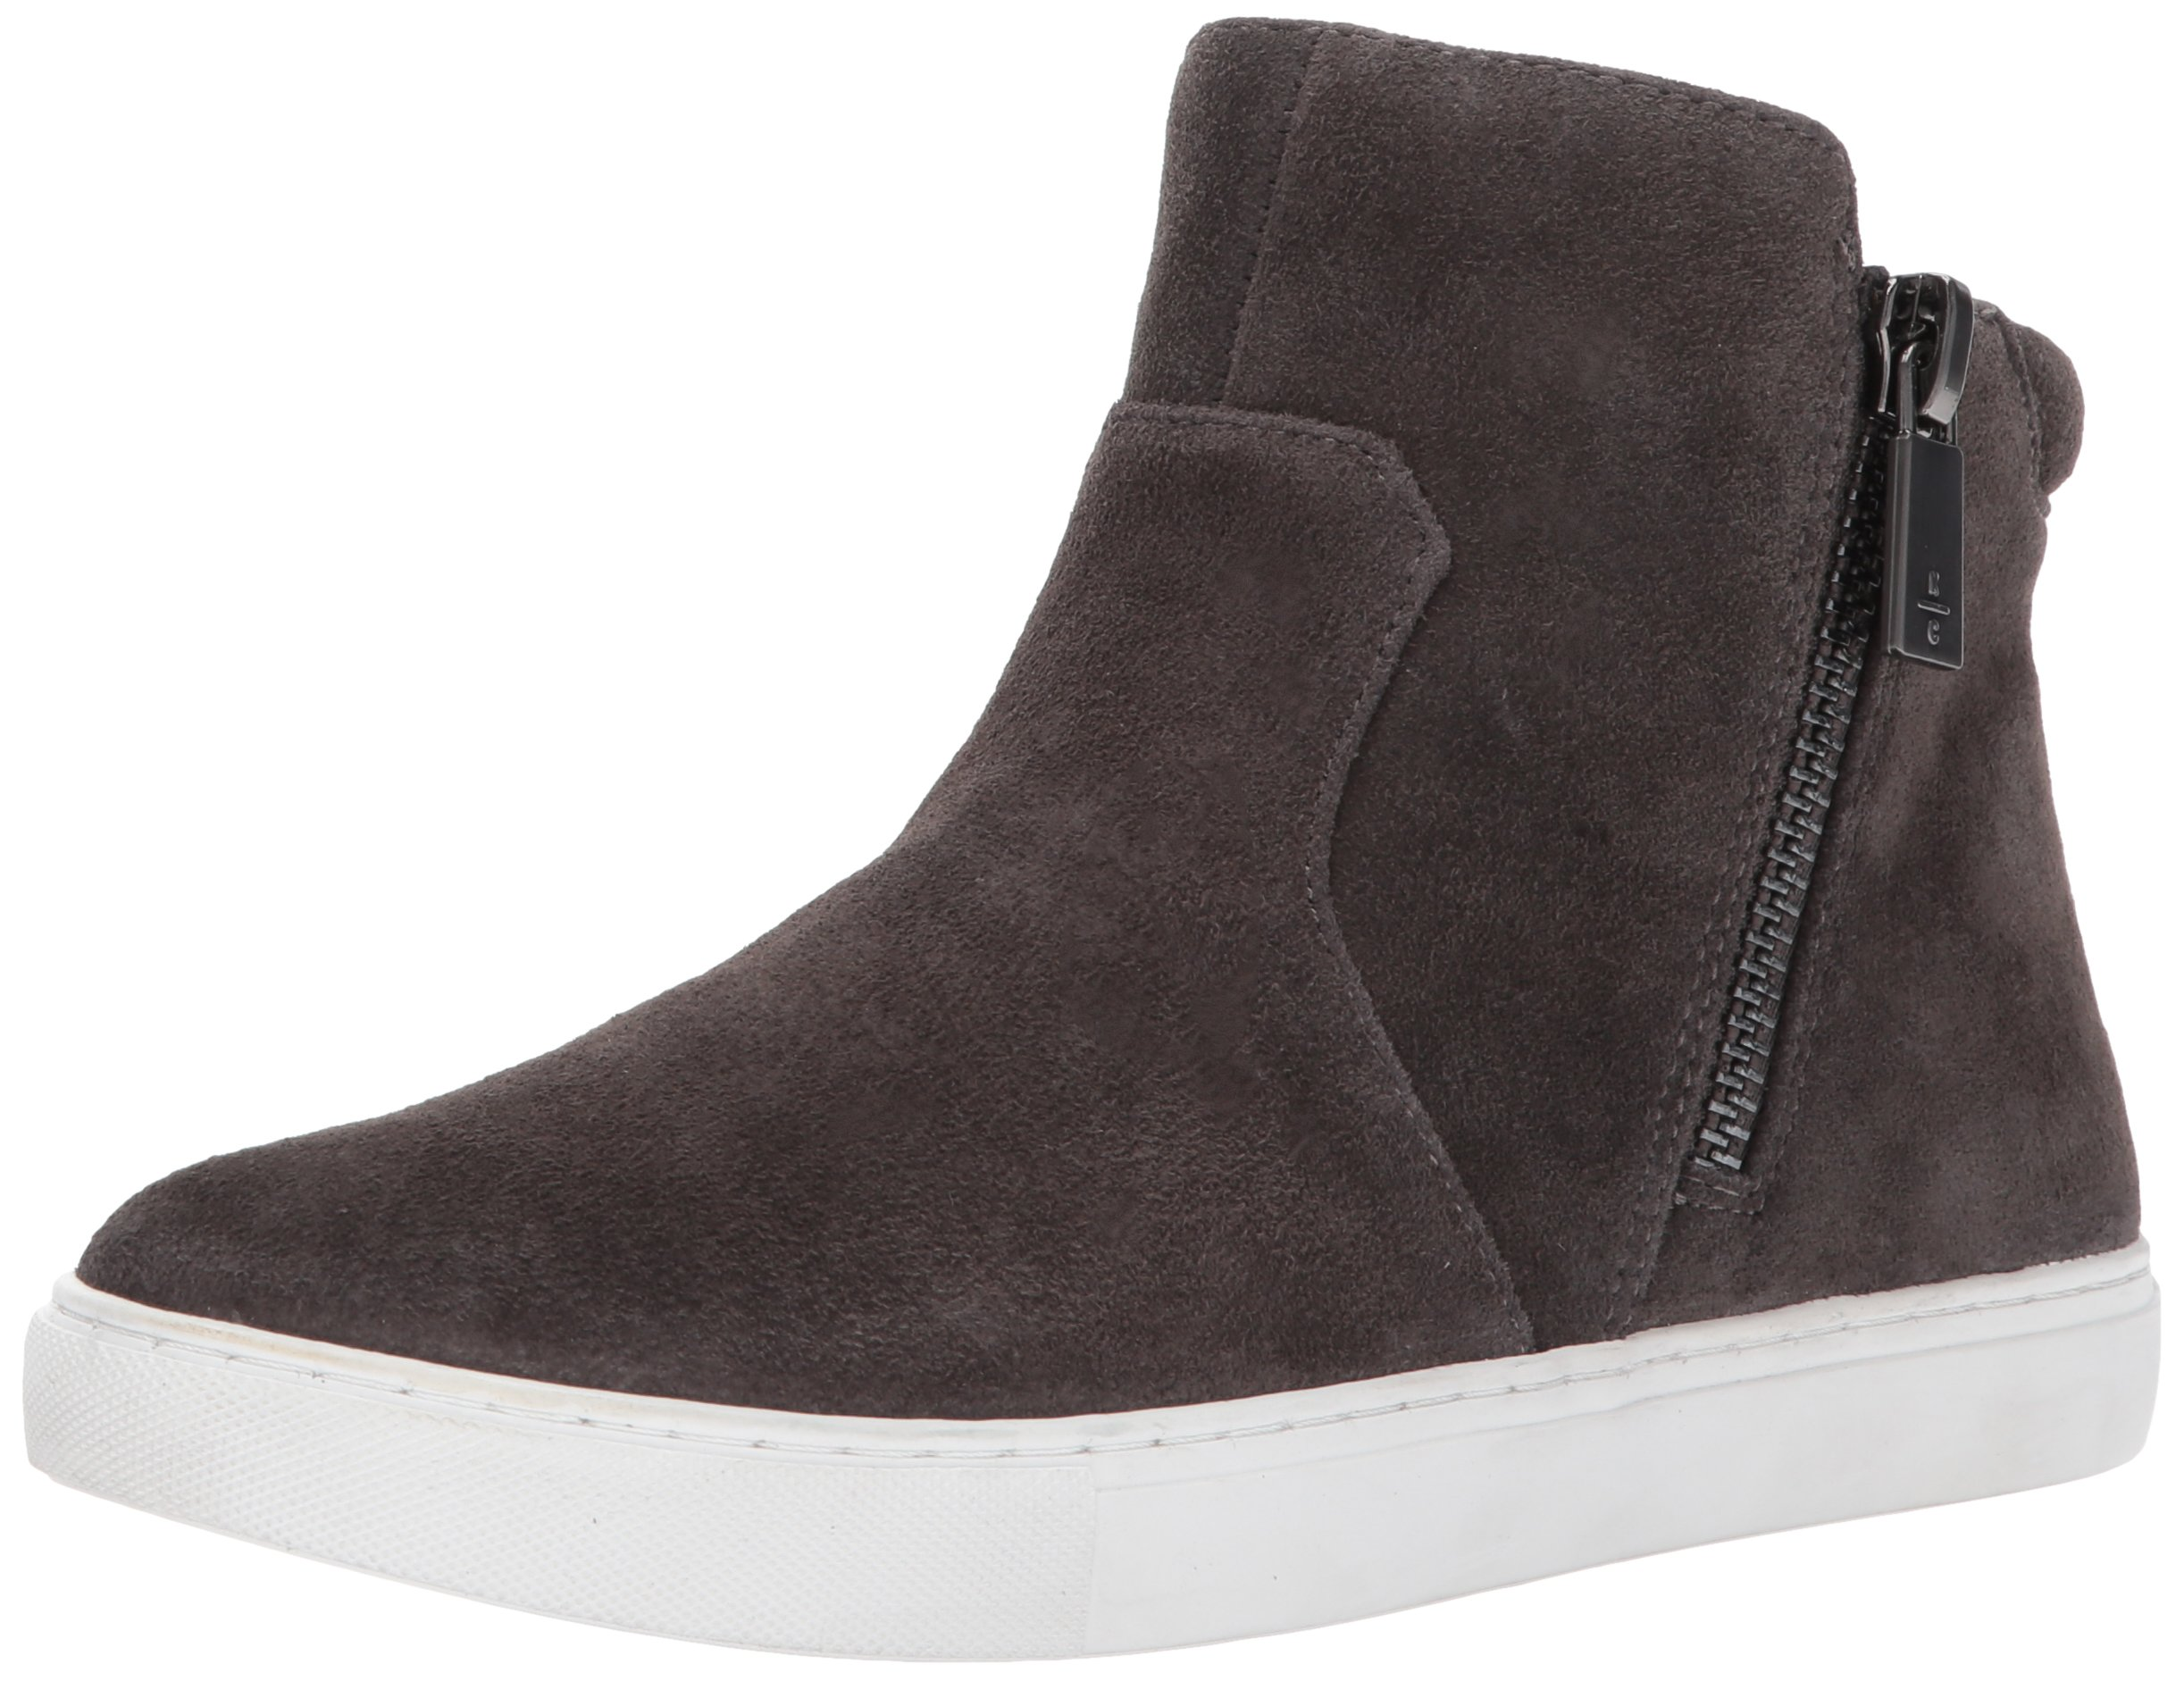 Kenneth Cole New York Women's Kiera High Top Double Zip Suede Fashion Sneaker, Asphault, 8 M US